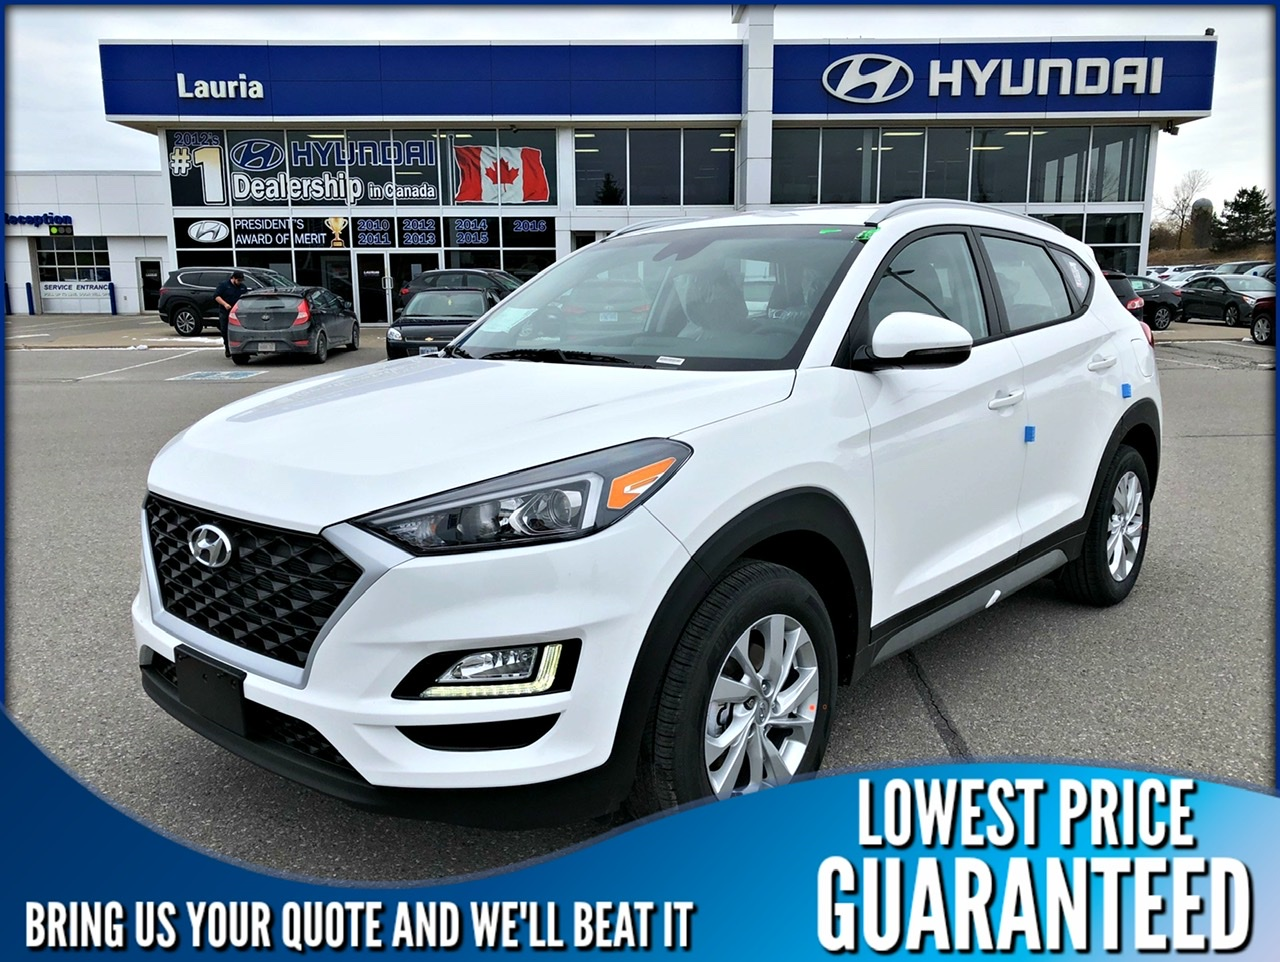 New 2020 Hyundai Tucson 2.0L AWD Preferred w/Sun & Leather pkg